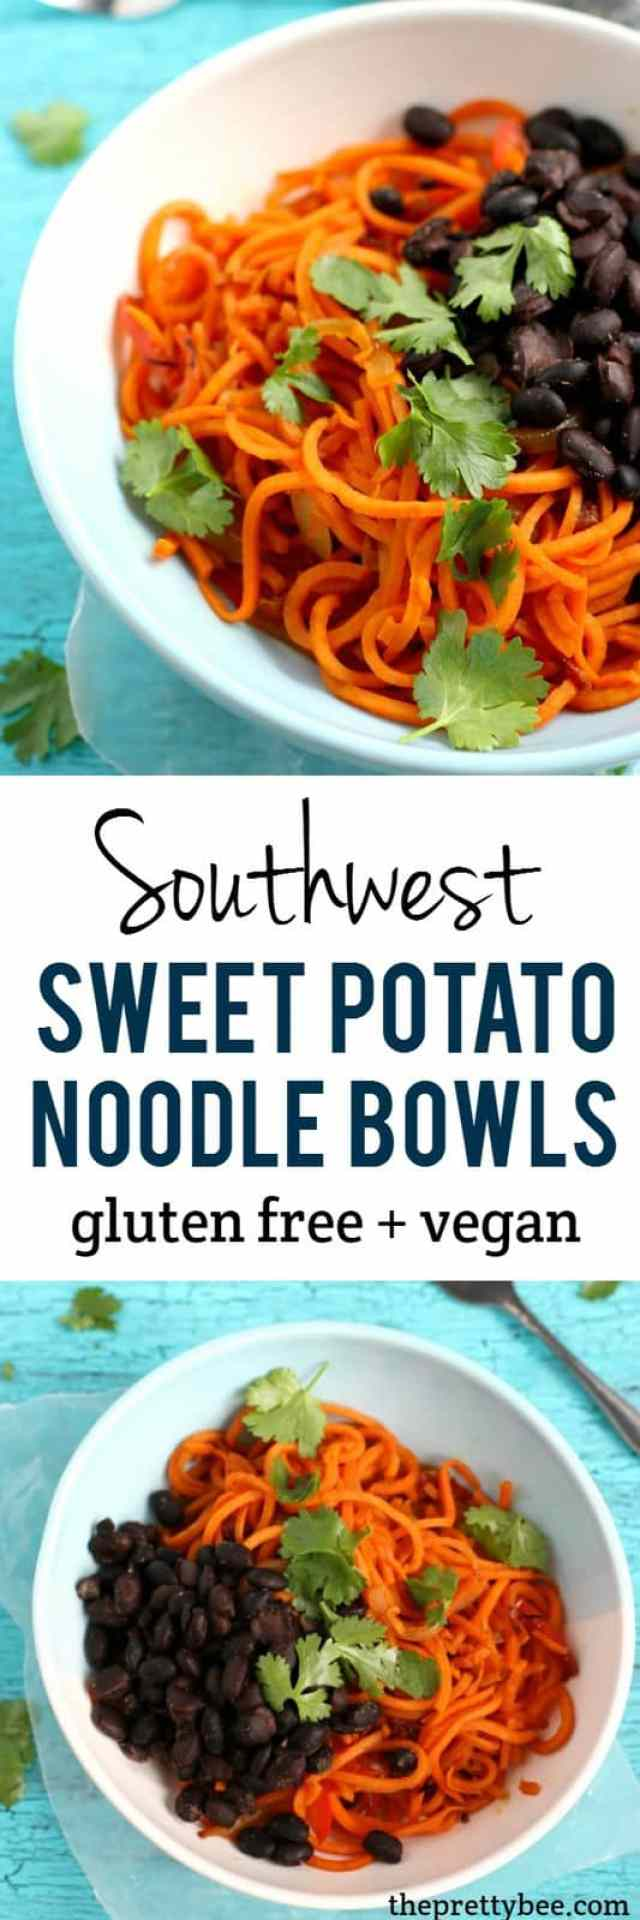 Fresh, flavorful, and colorful southwest sweet potato noodle bowls are a perfect dinner or lunch option!